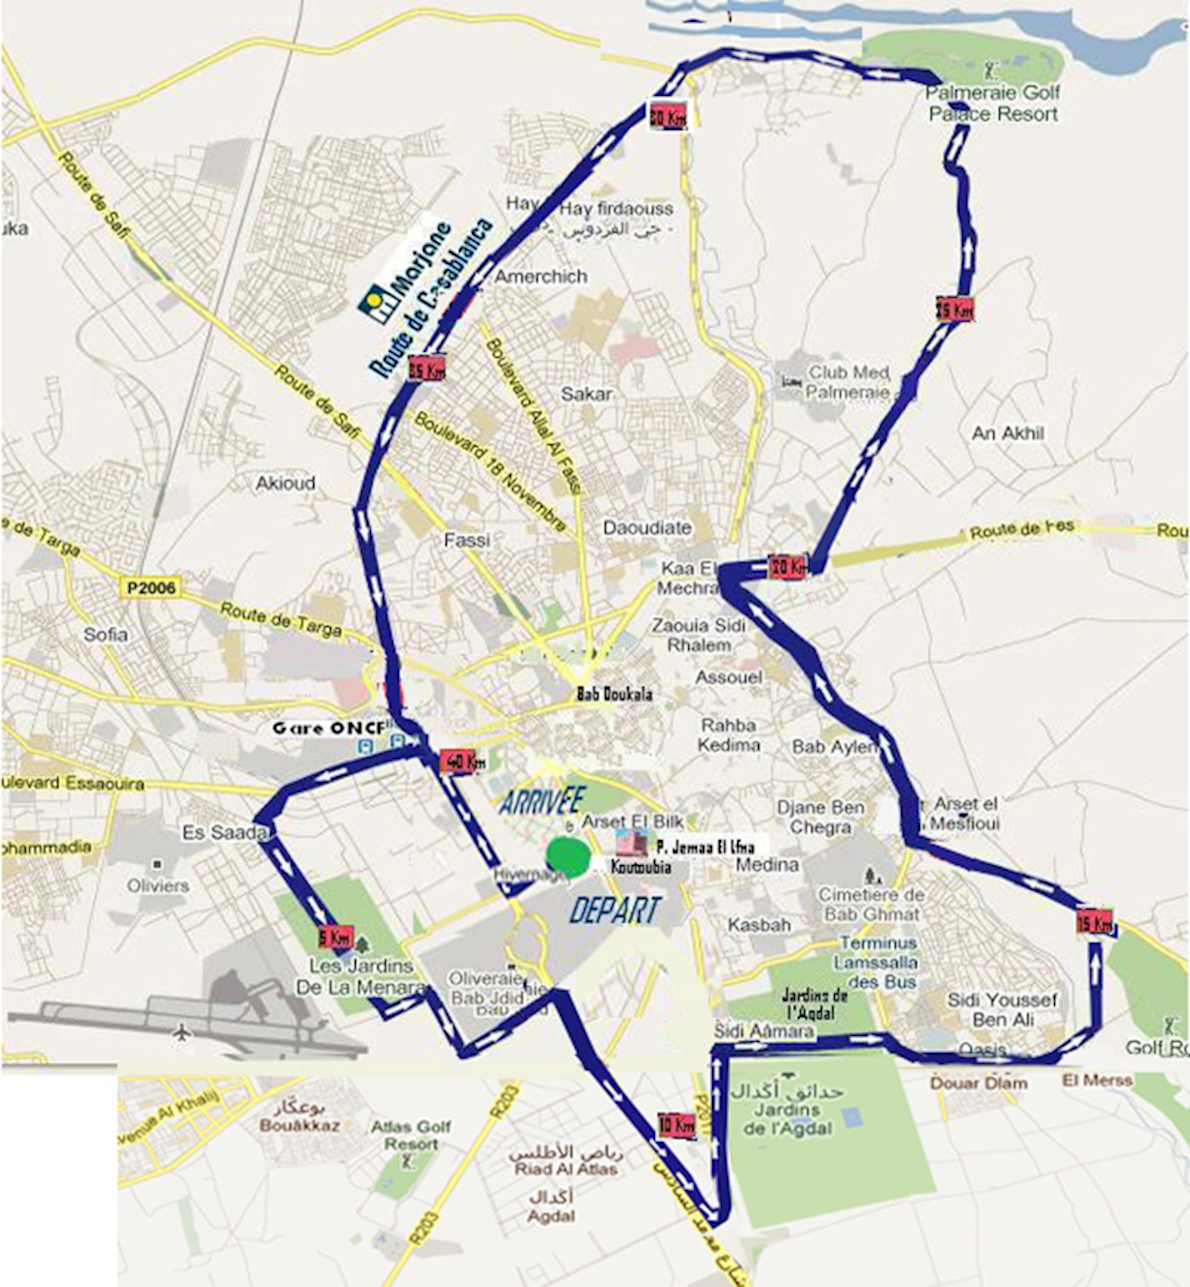 International Marathon of Marrakech 路线图